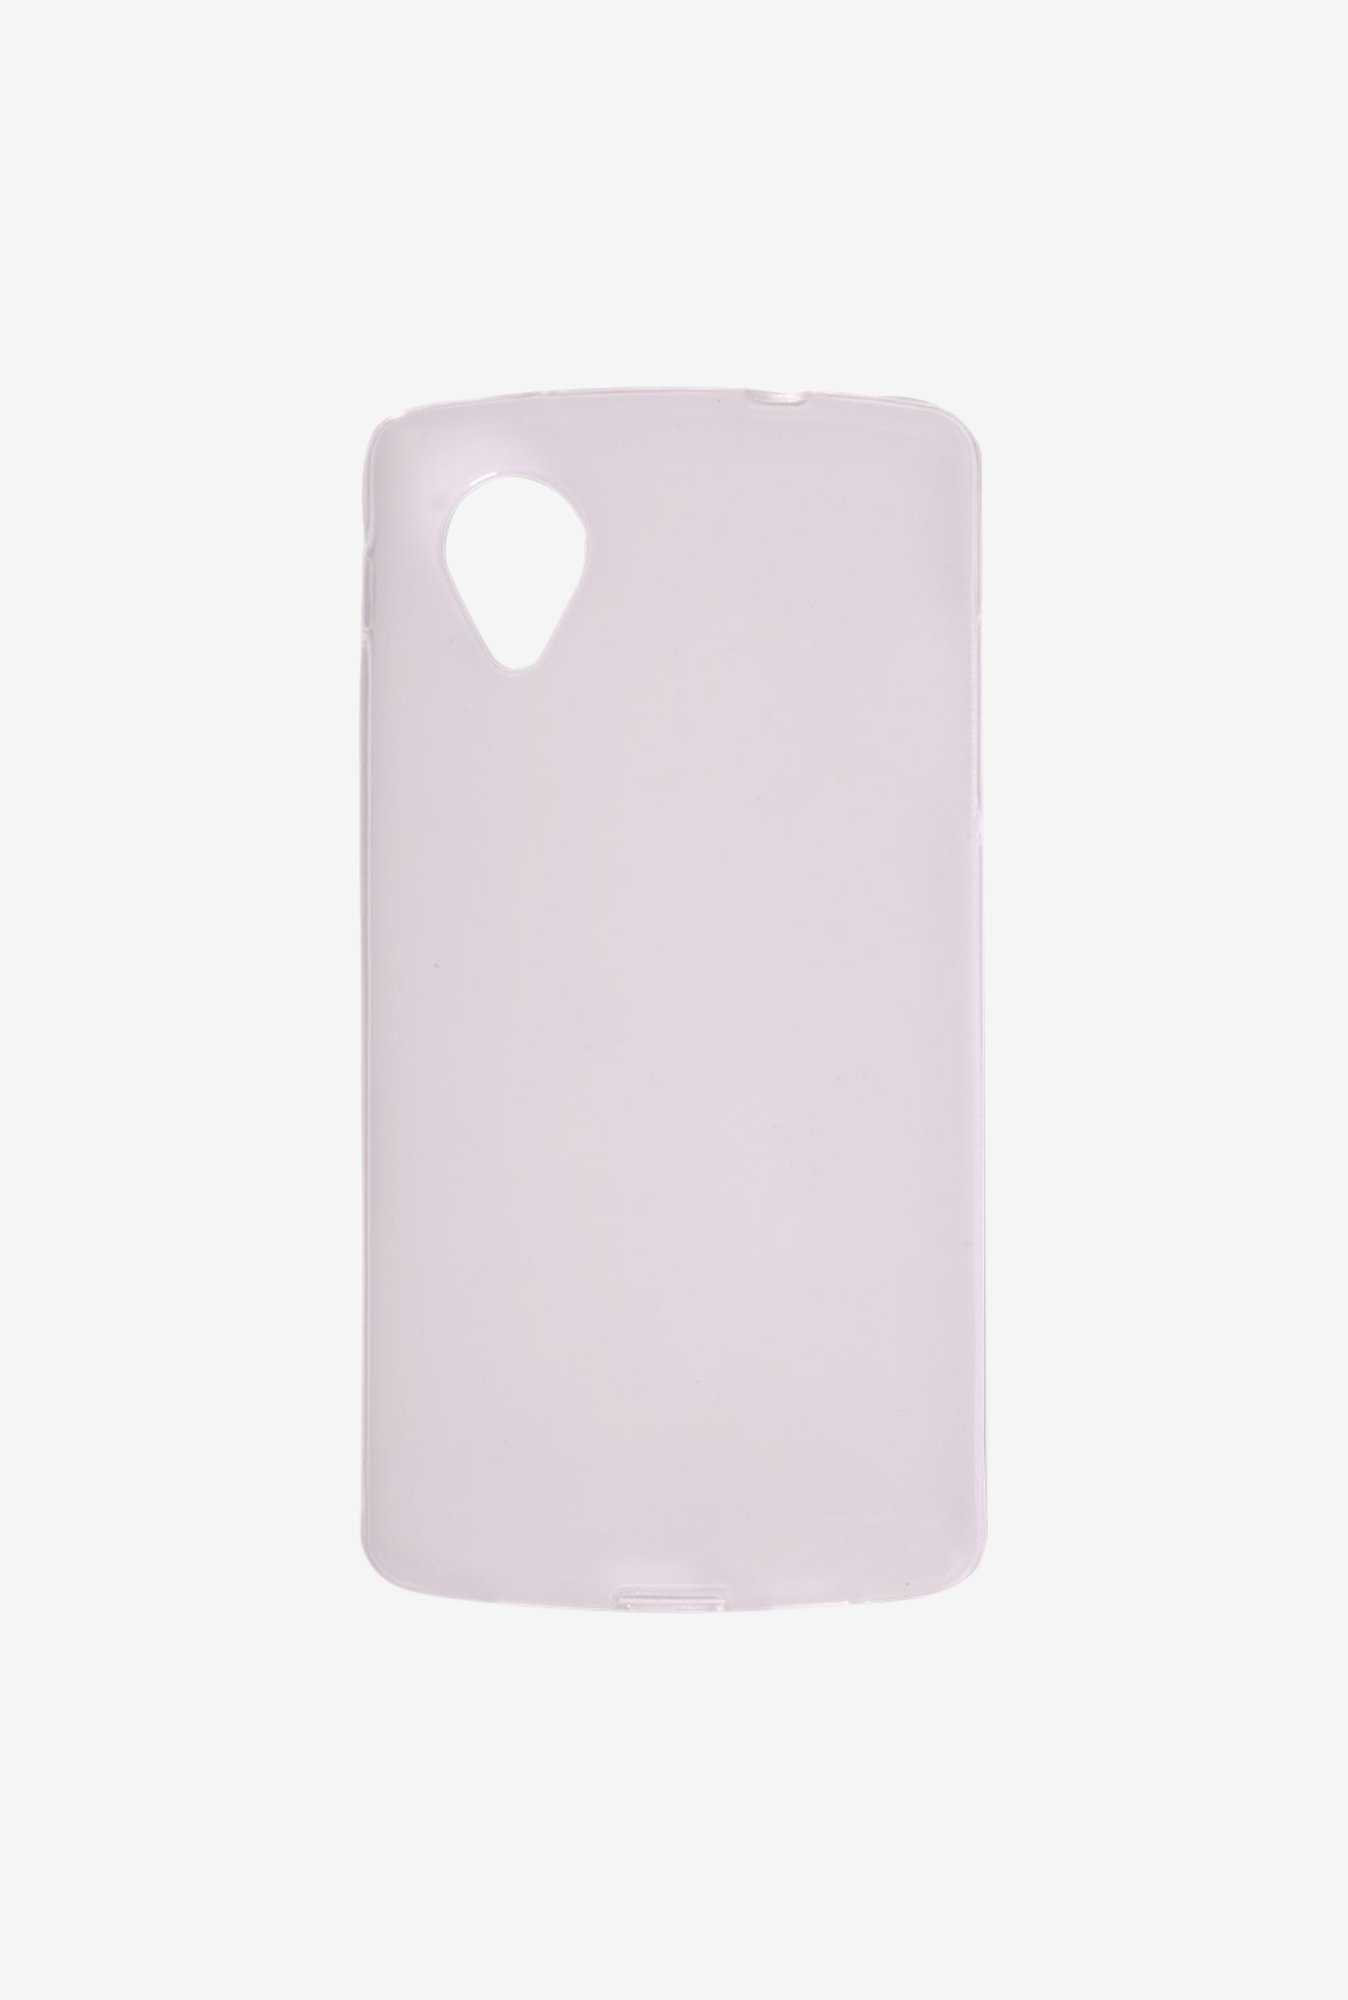 iAccy LGC002 Back Cover White for Google Nexus 5